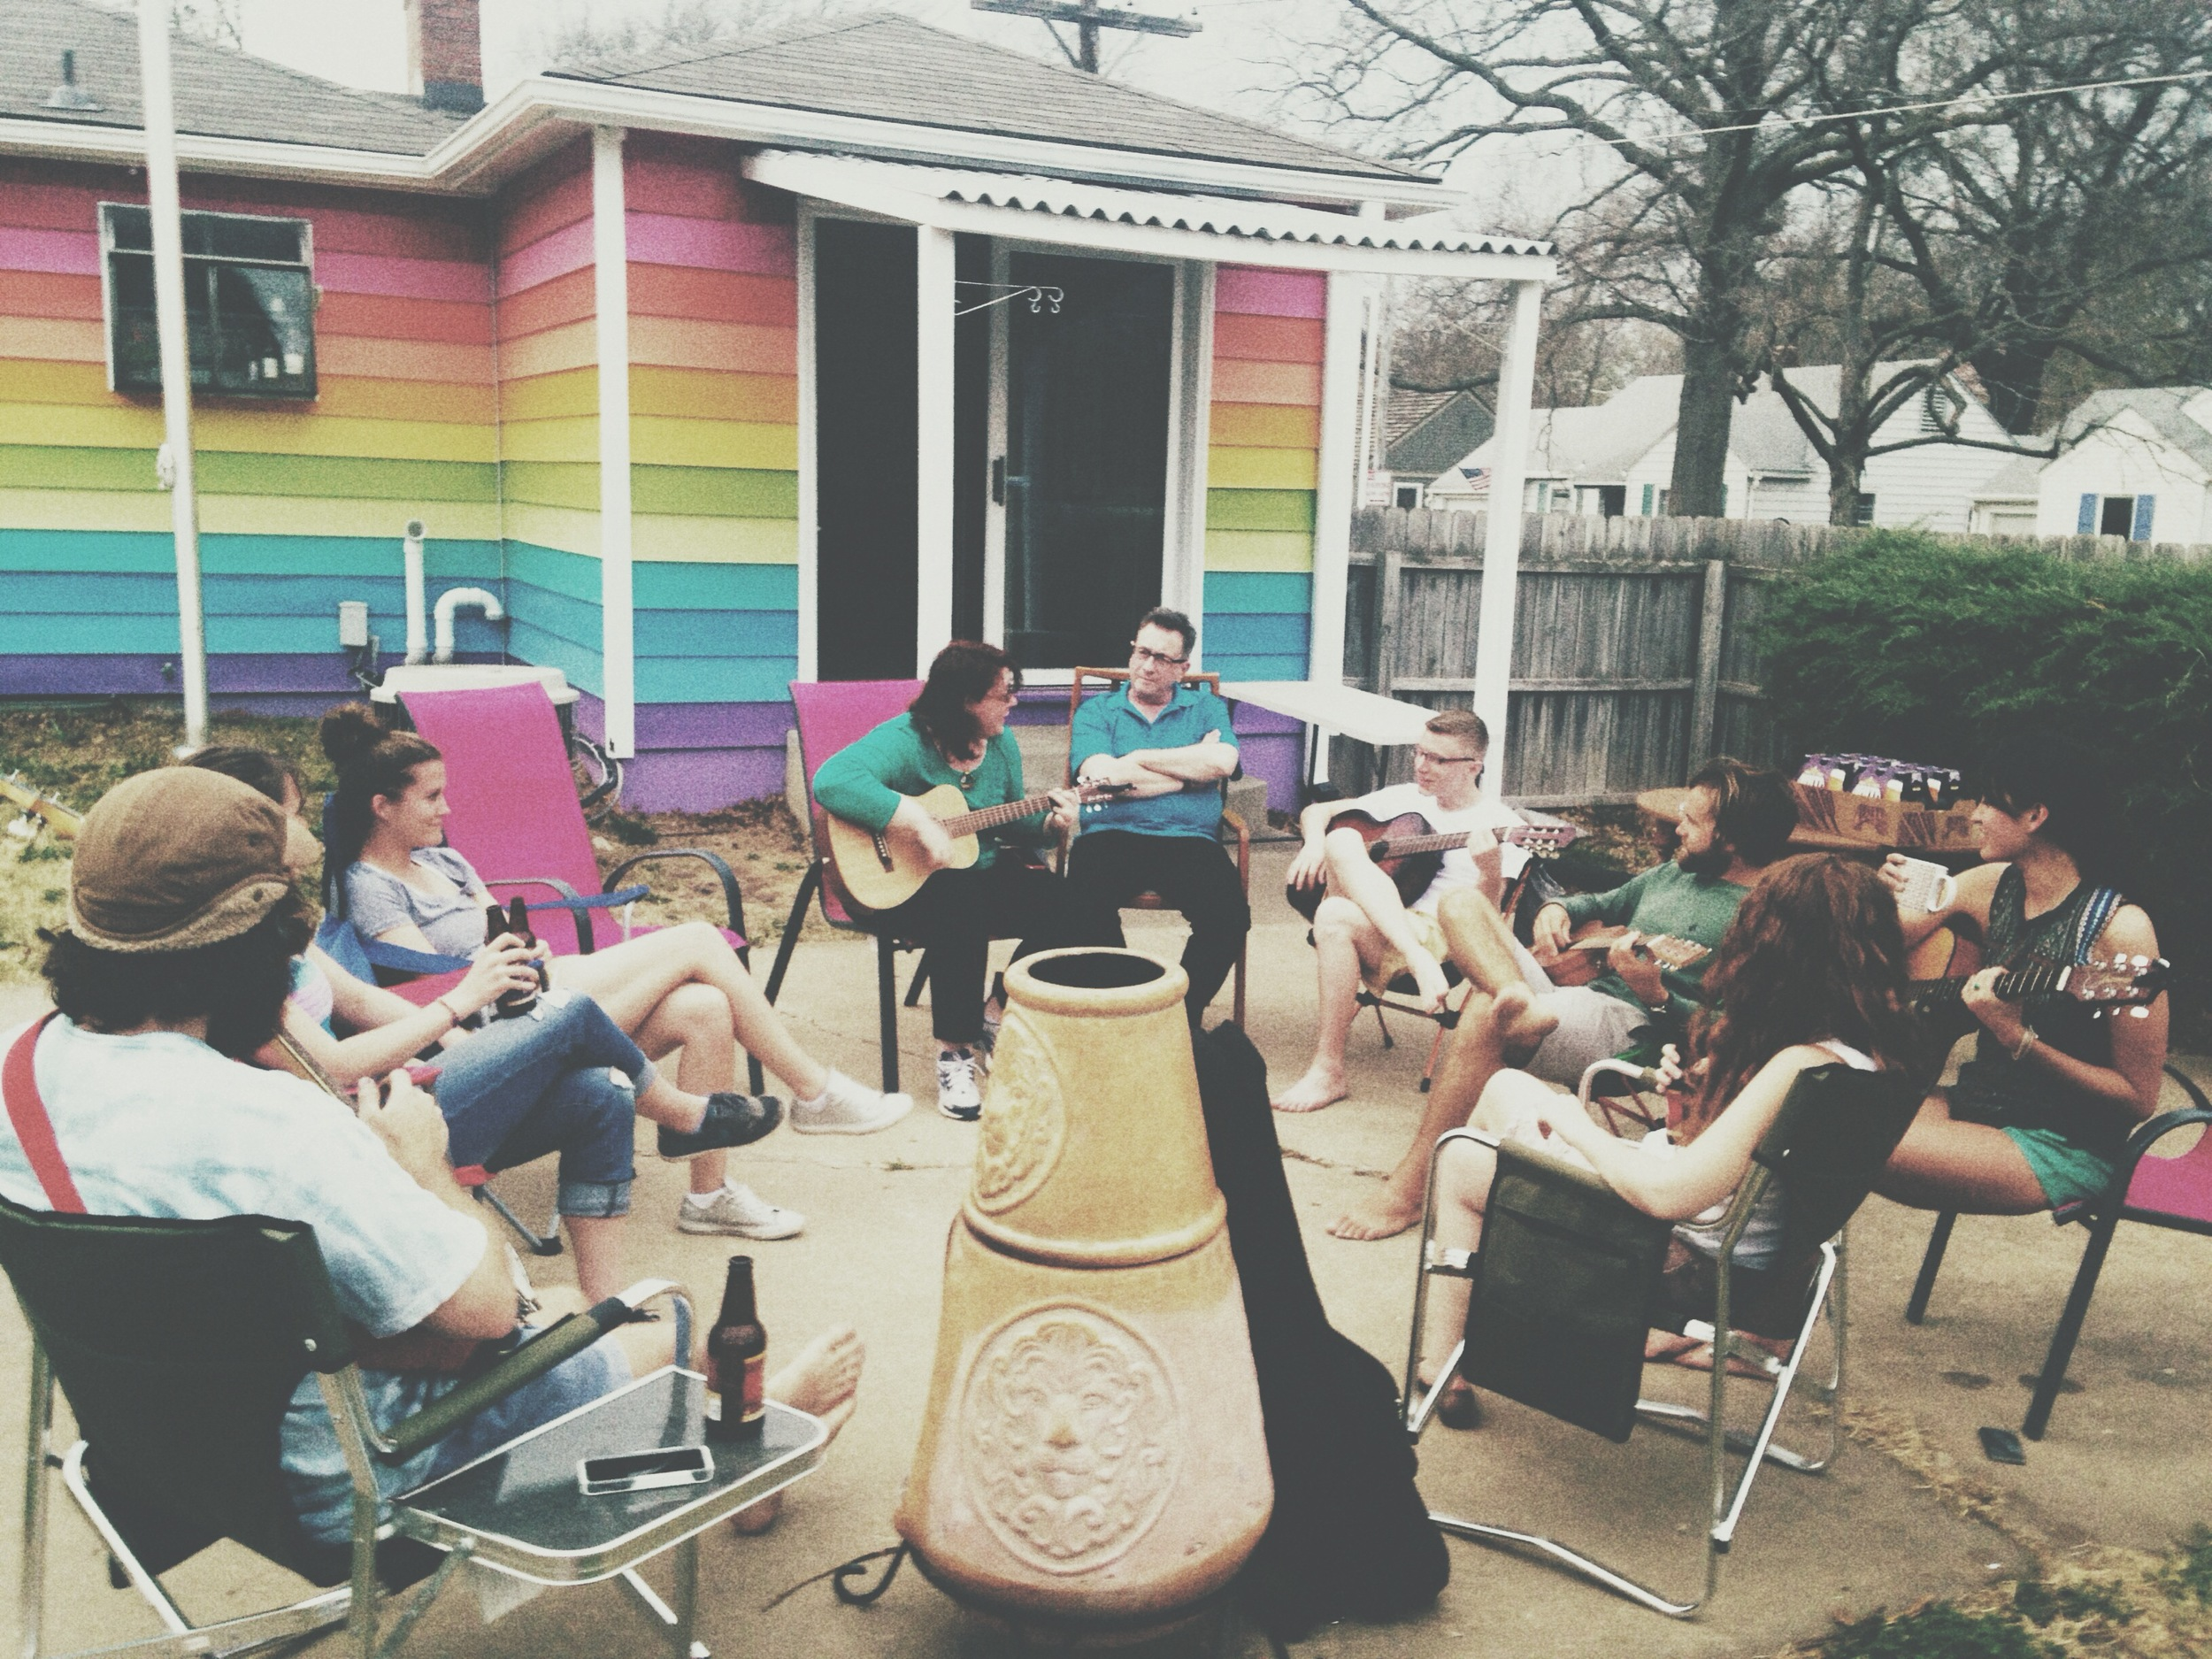 Our last night together spent outside making music with the ones we love.